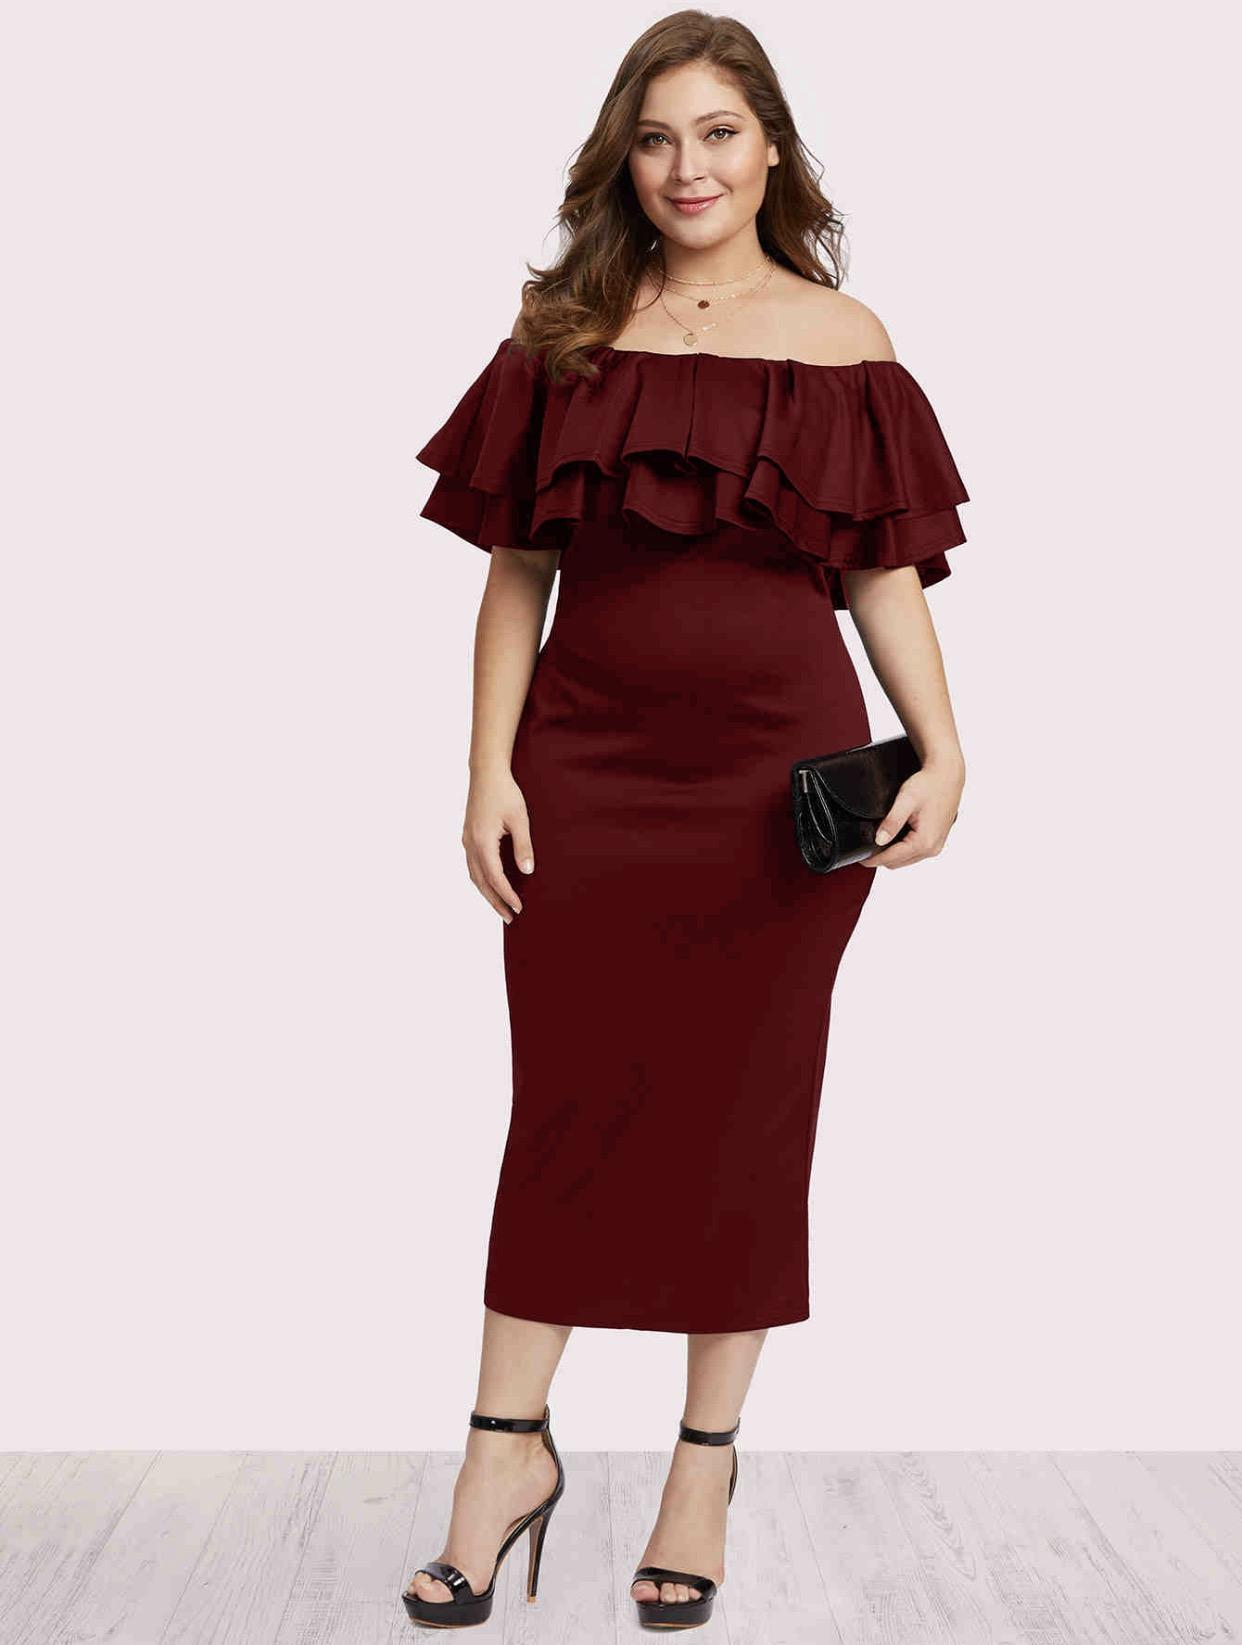 A1969 Off the Shoulder 2-layer Plus Size Dress L XL (XXL)